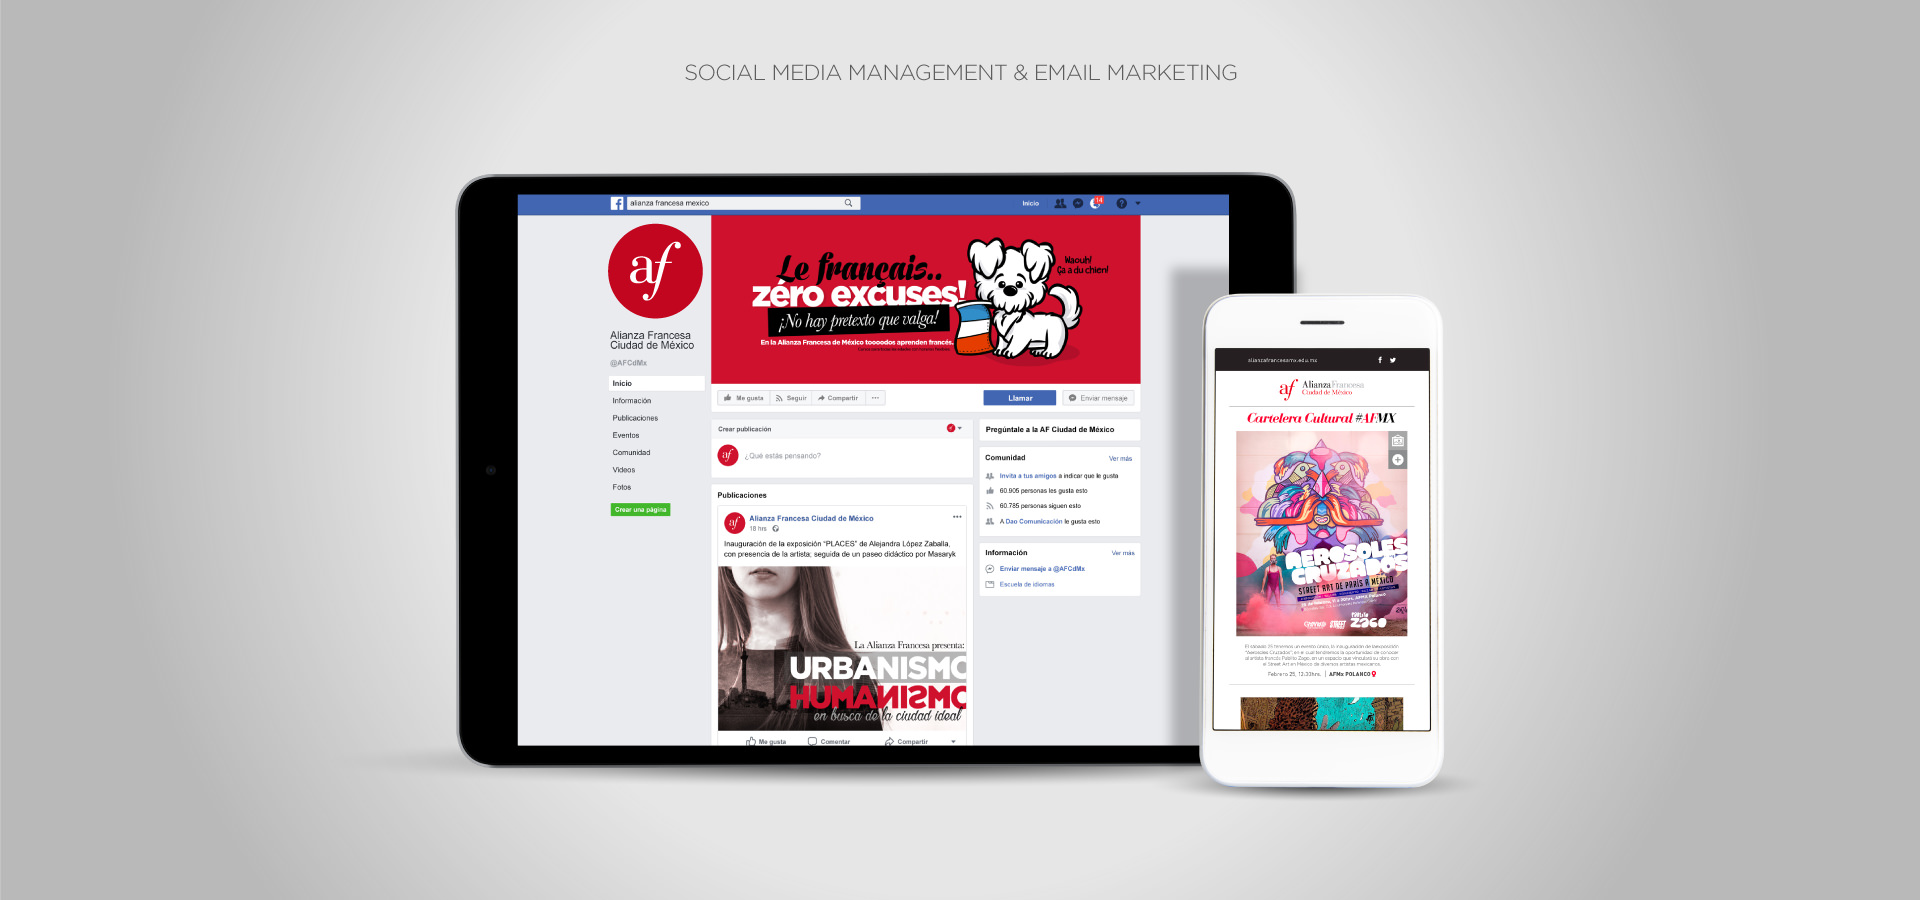 Social Media, Digital & Content Management | Facebook, Instagram, Linkedin | eMail Marketing